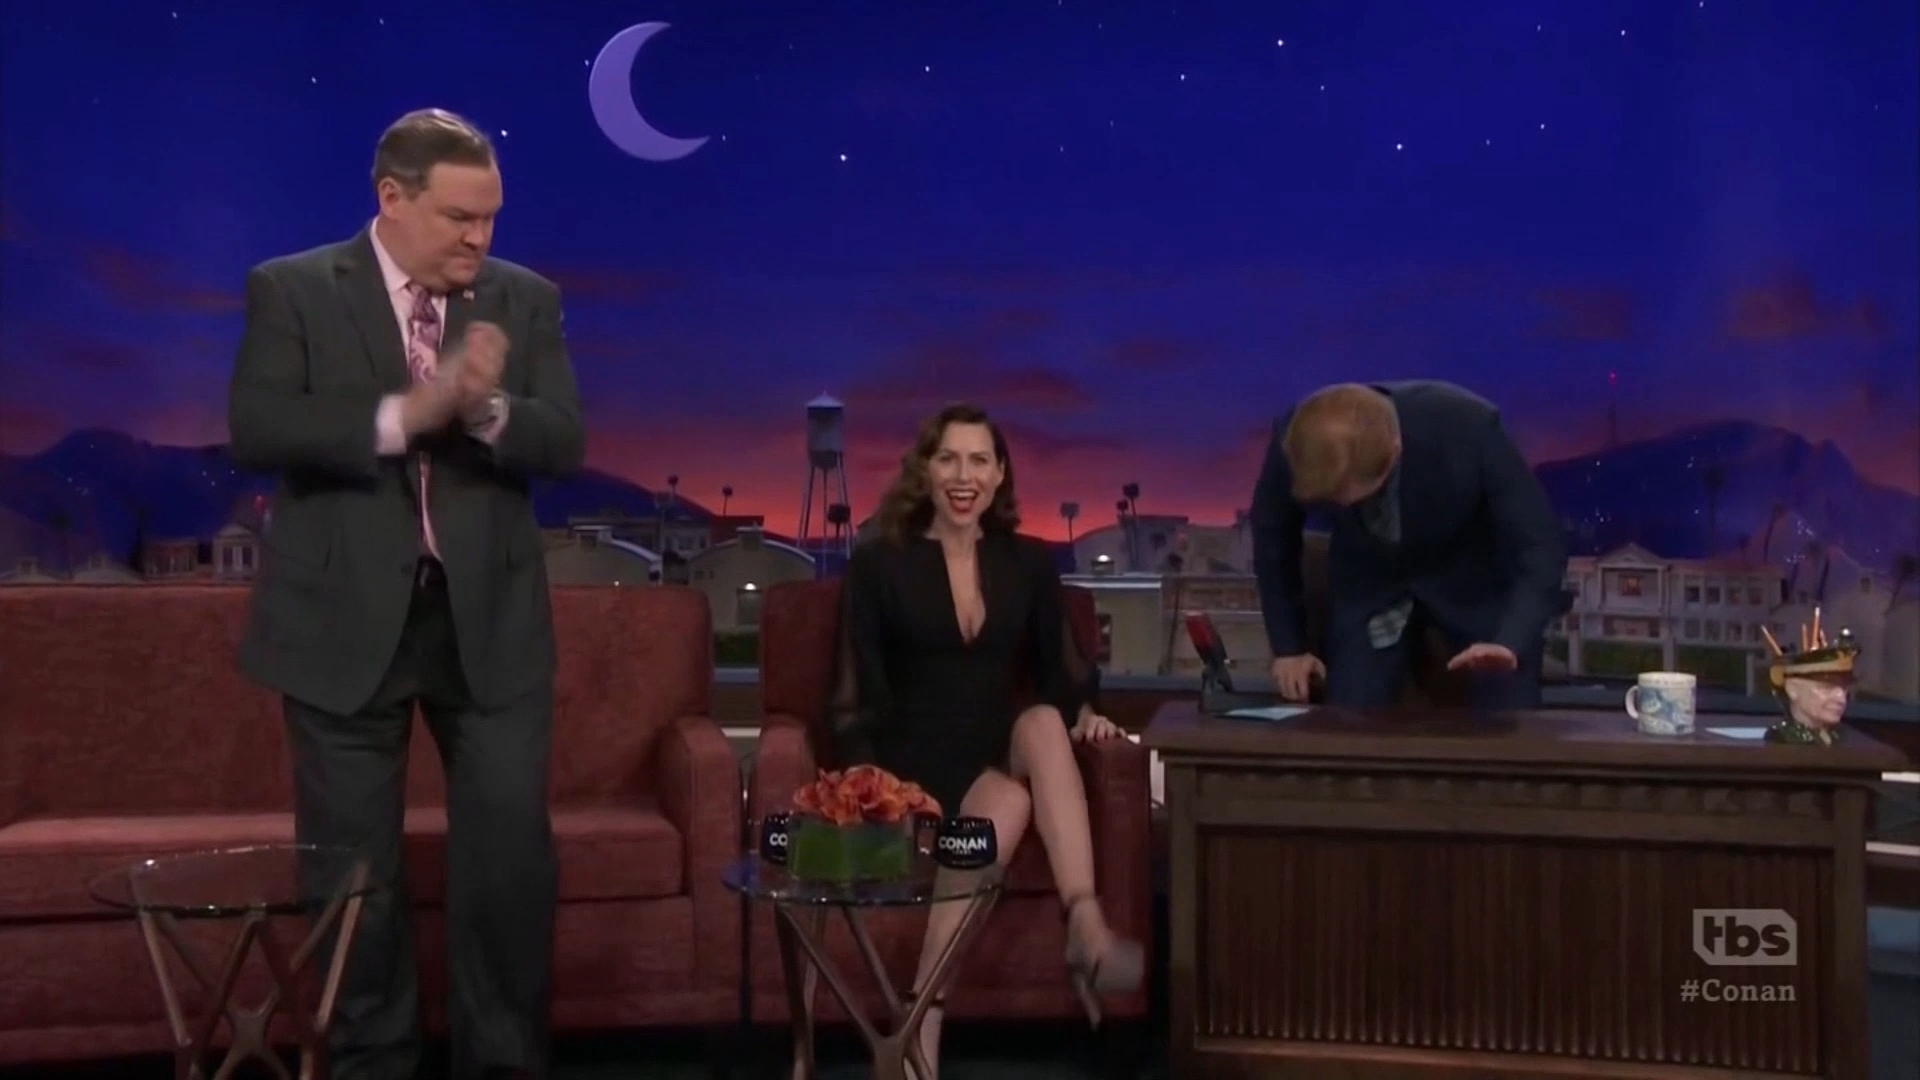 69850400_minnie-driver-conan-o-brien-show-12-03-2018-19x-caps-_19.jpg